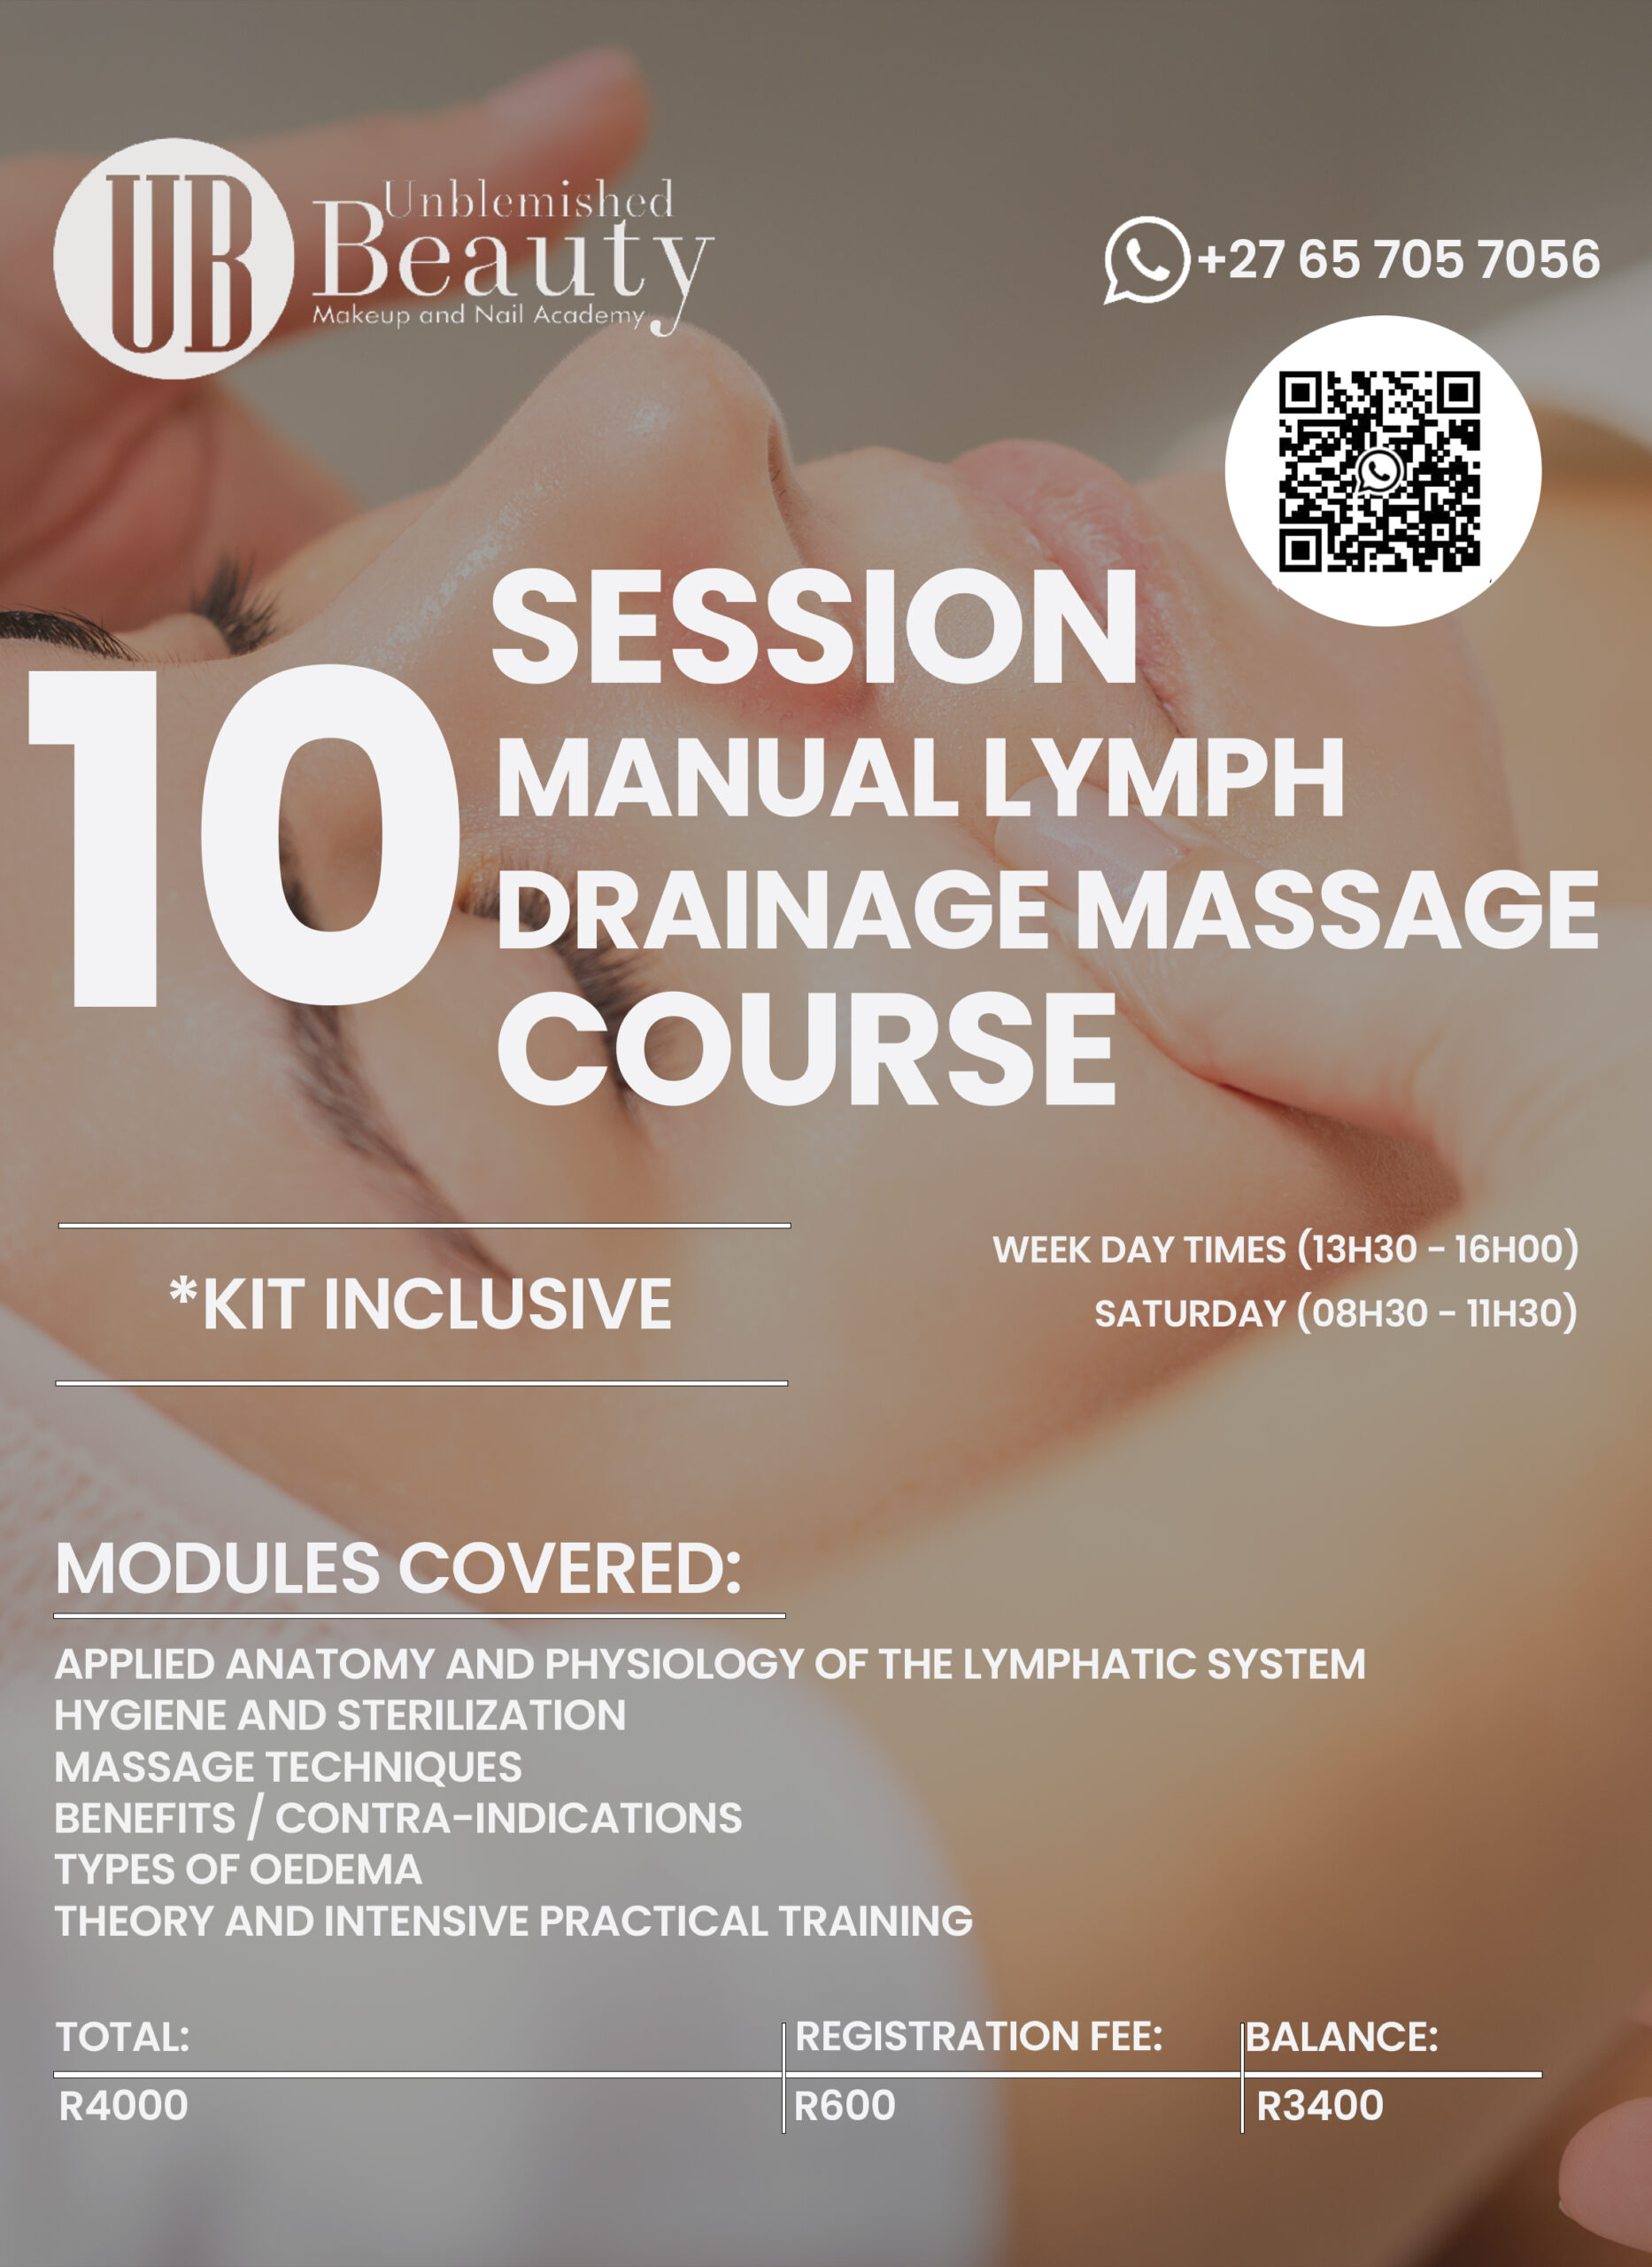 Unblemished Beauty Course Posters- Manual Lymph Drainage Massage 2